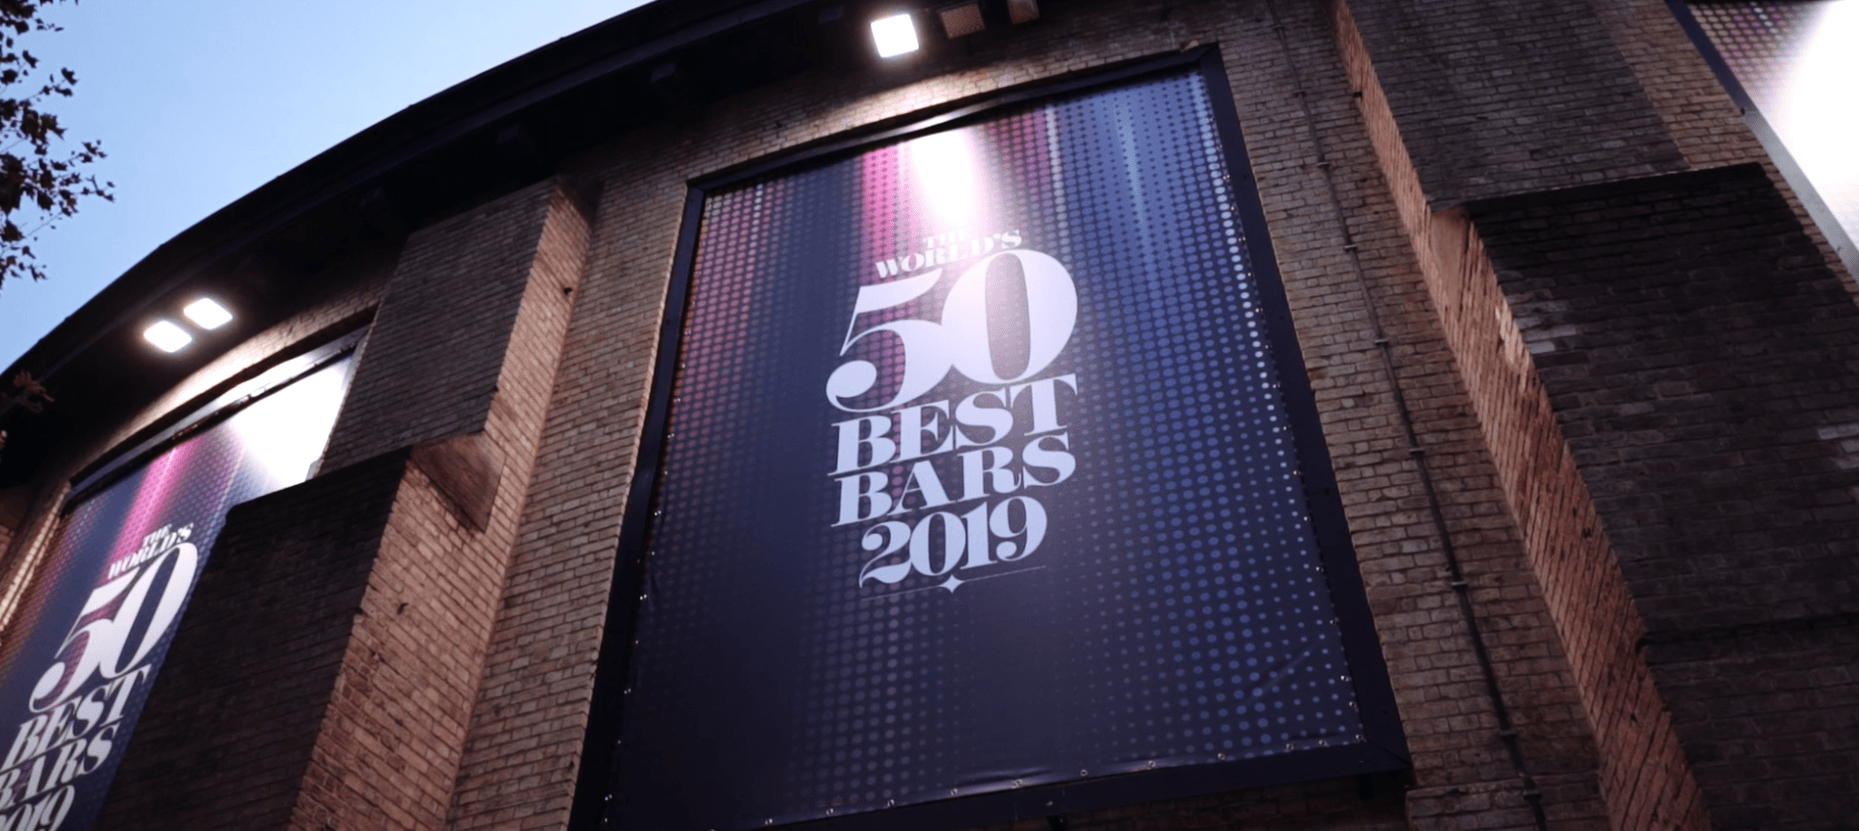 Thomas Henry bei den Worlds 50 Best Bars in London 2019